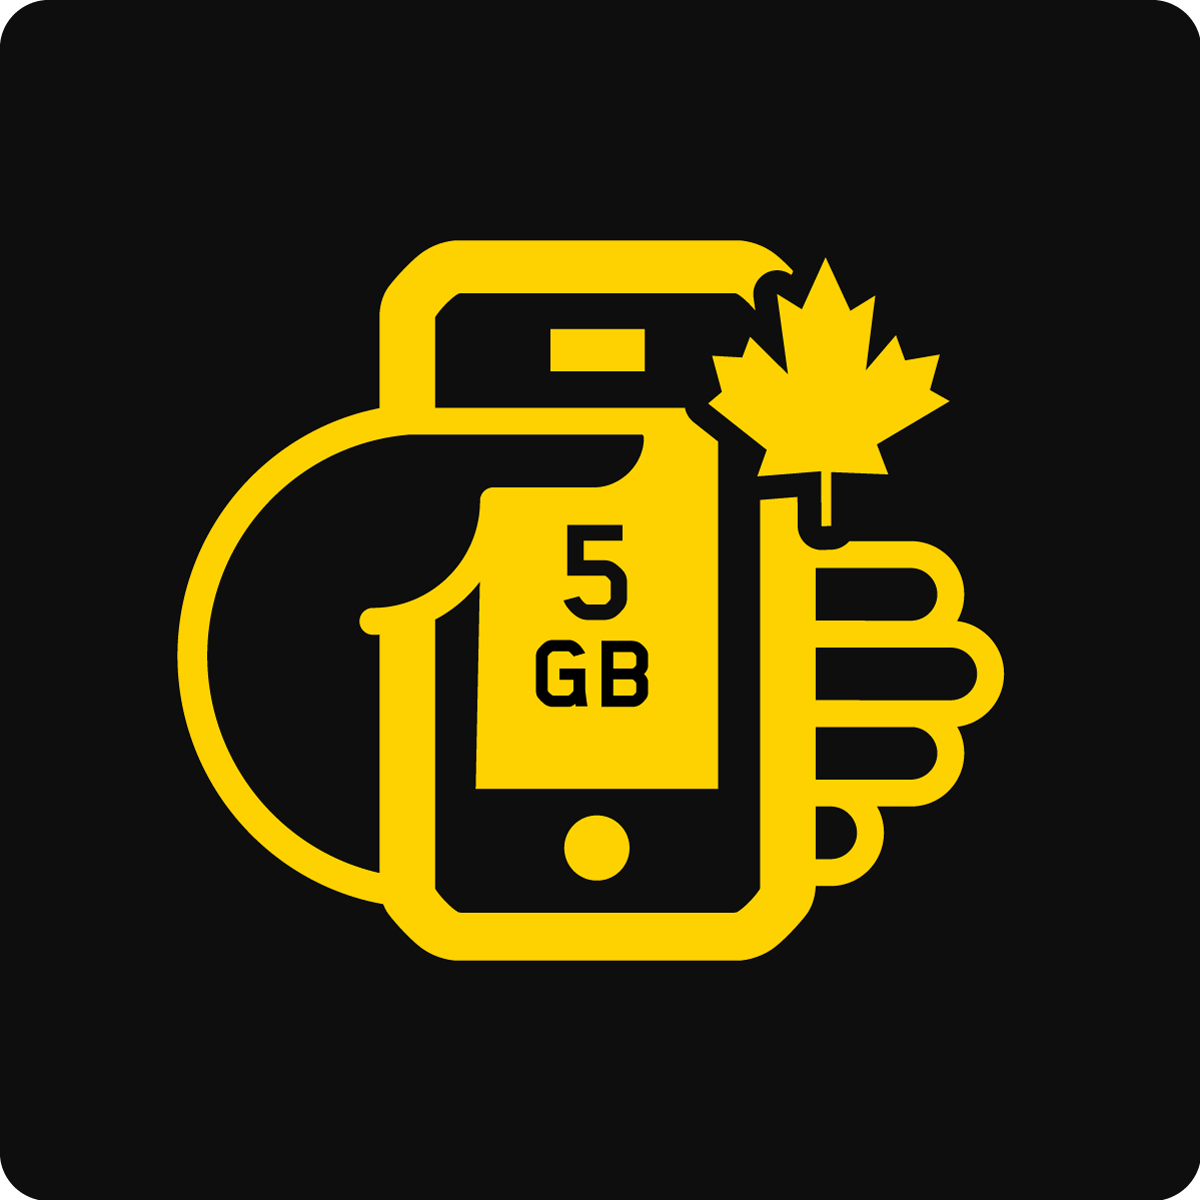 Bring Your Own Device Canada 5GB Mobile plan